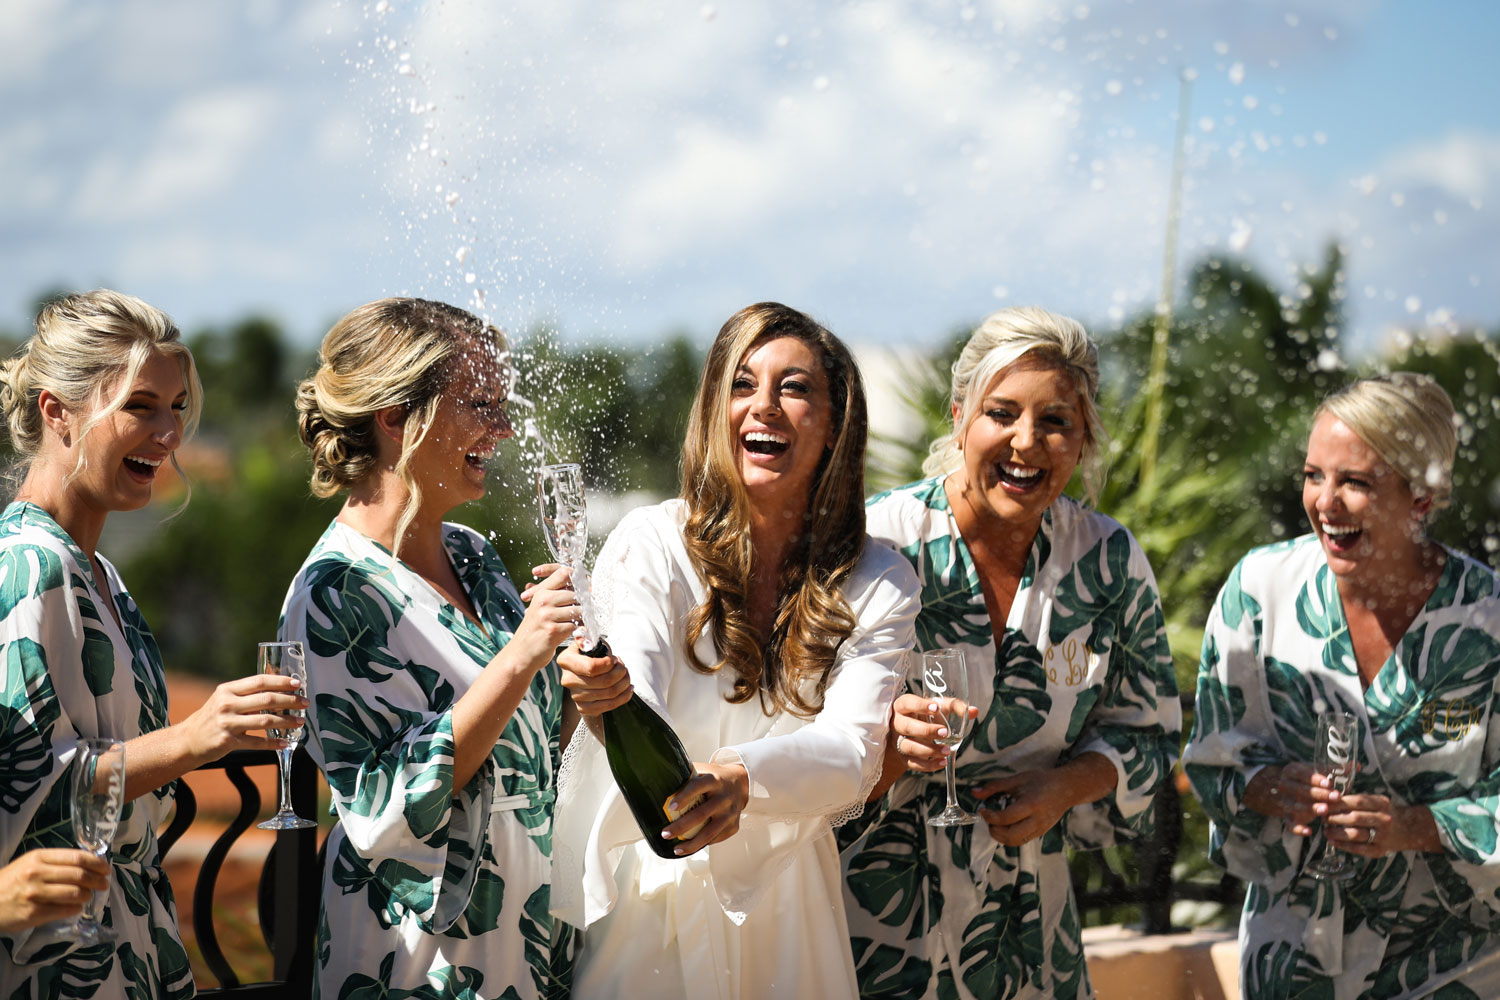 bride with bridesmaids in robes popping champagne in celebration